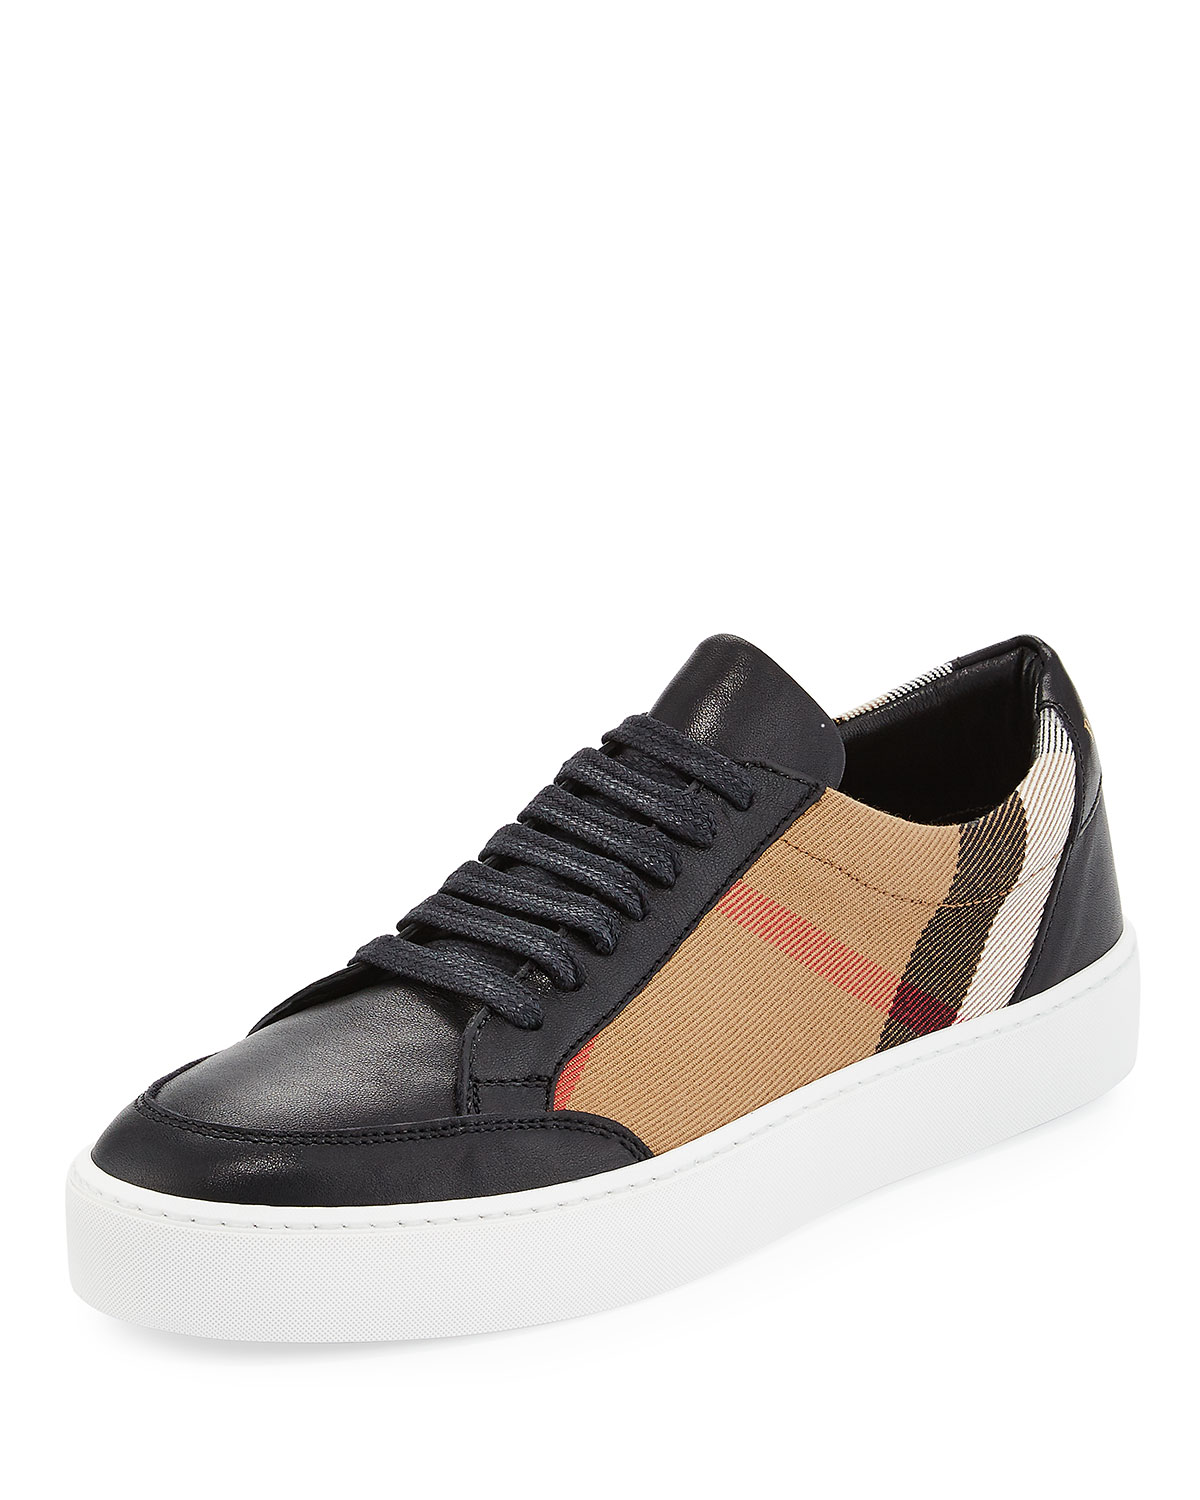 01dcded5cfd Burberry Salmond Check & Leather Low-Top Sneakers, House Check/Black ...